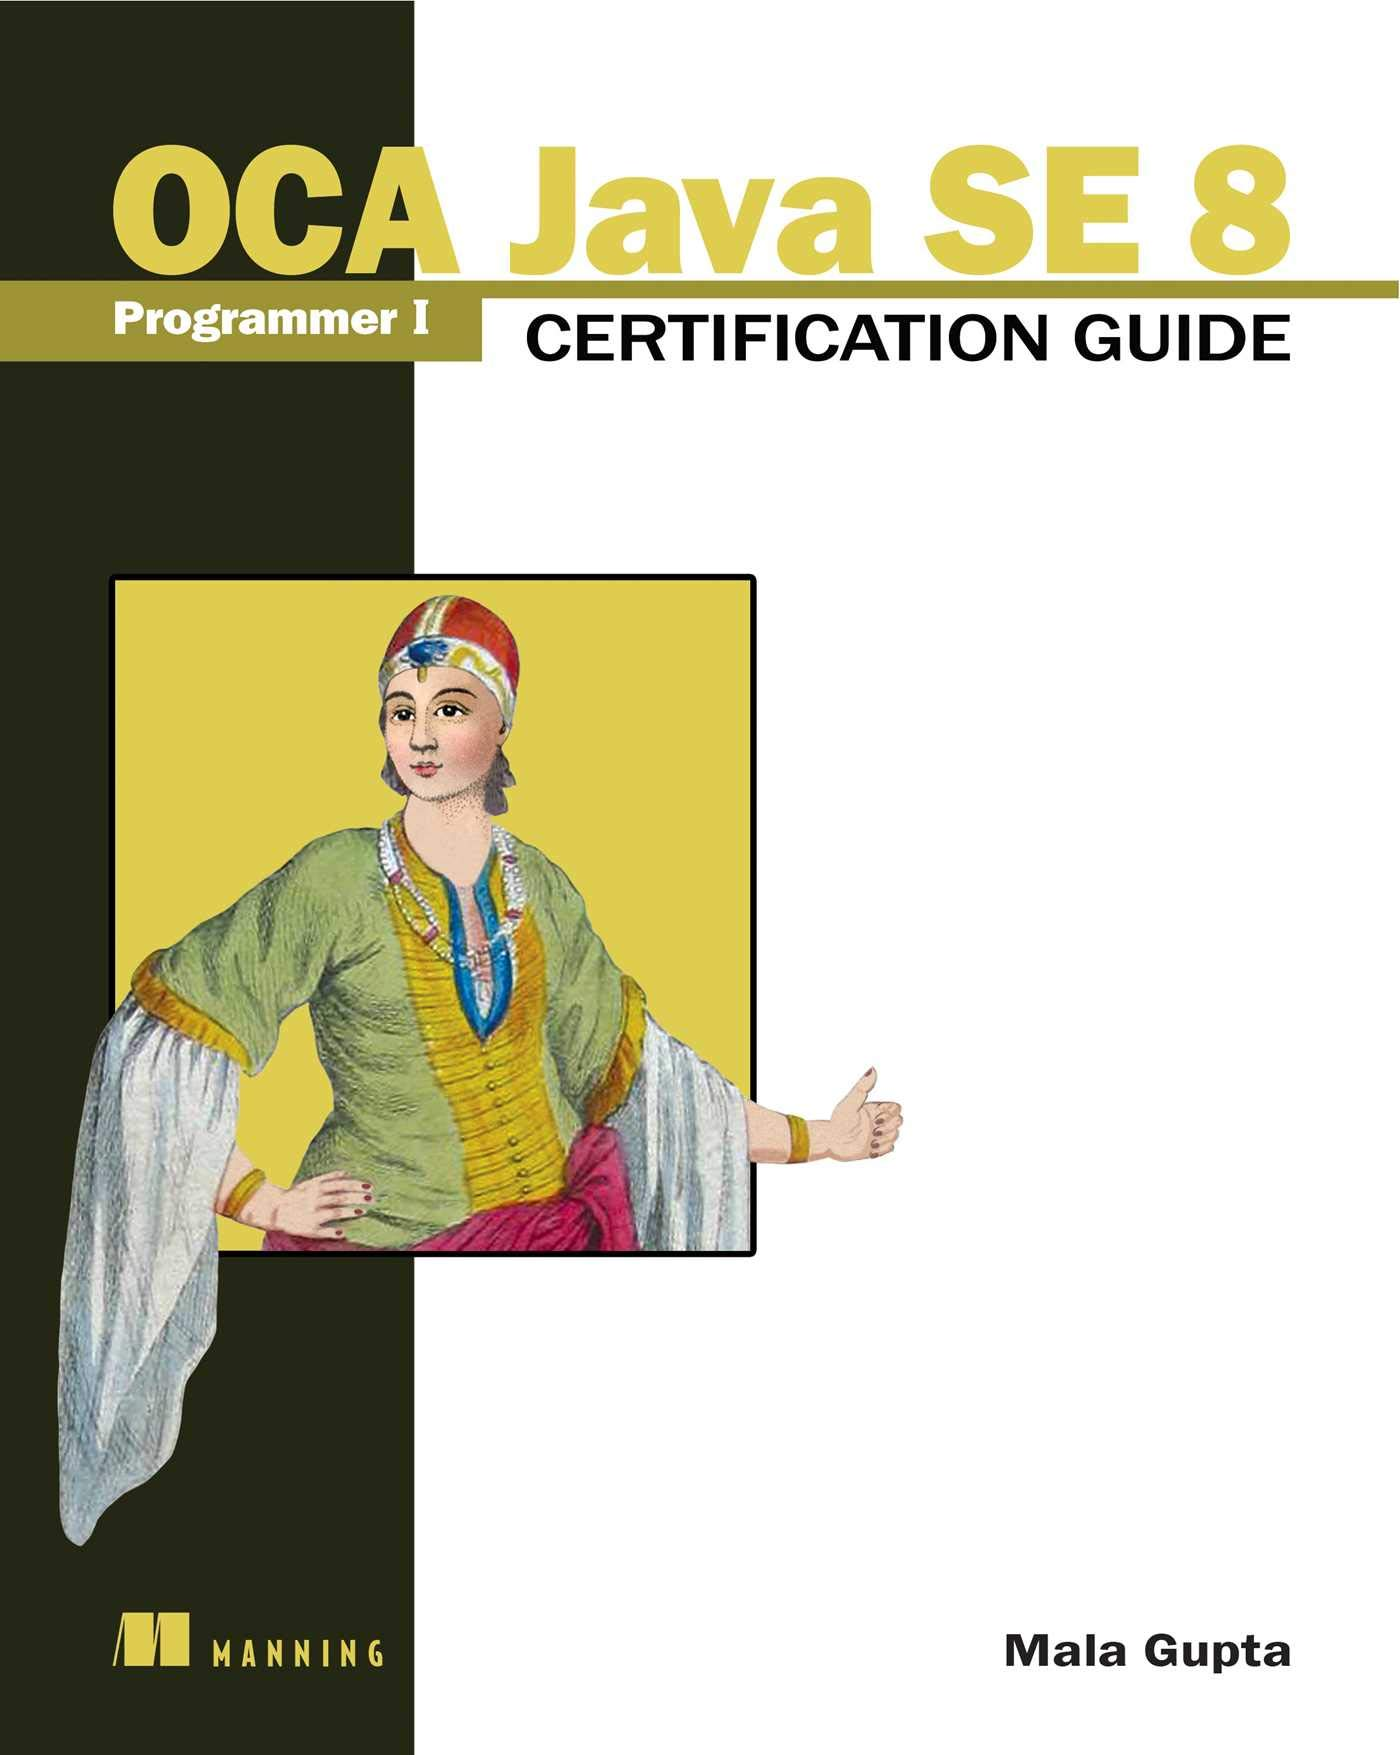 Image OfOCA Java SE 8 Programmer I Certification Guide